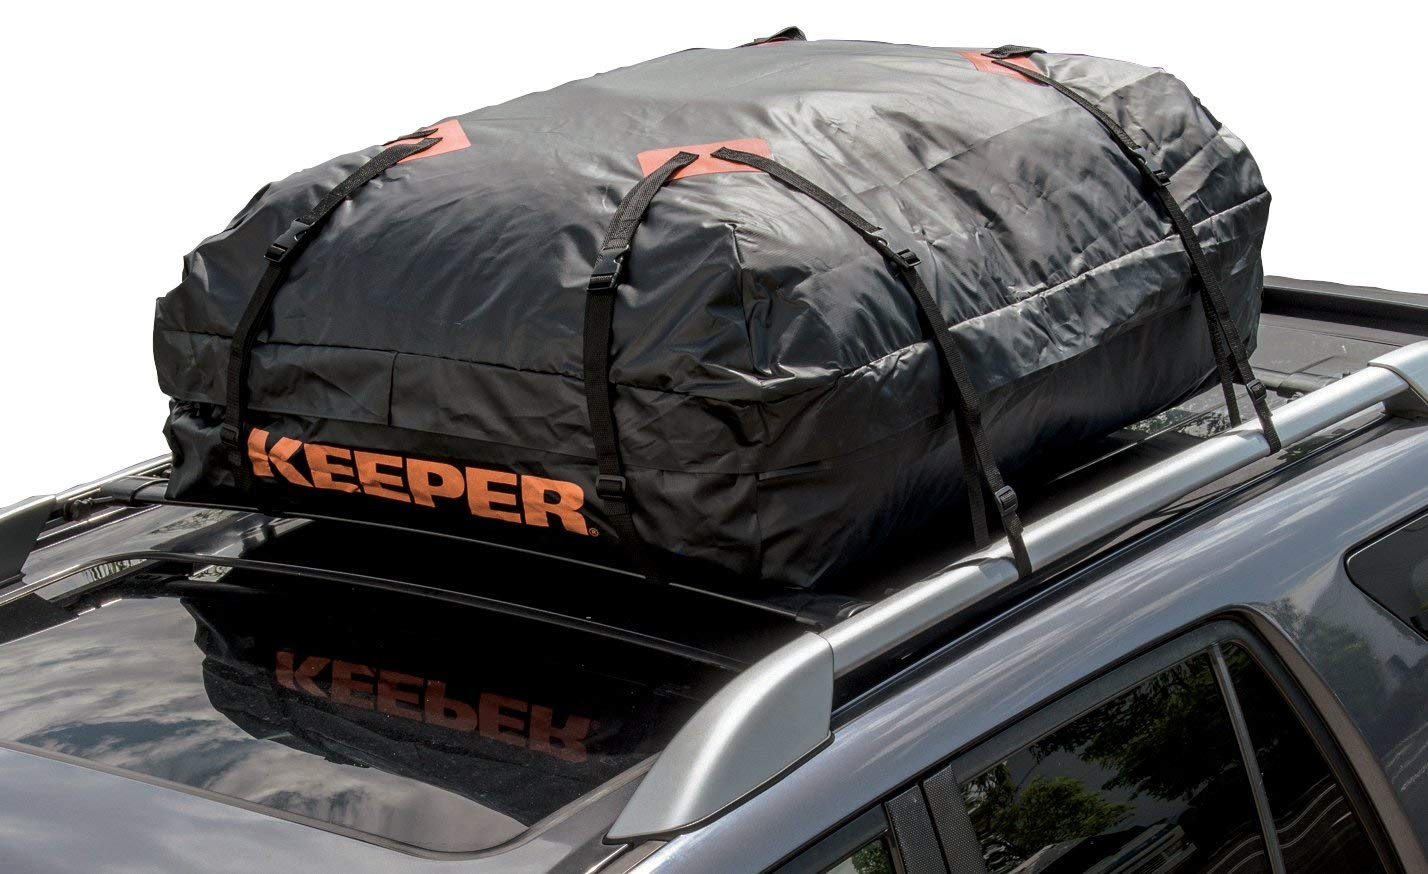 2. Keeper Roof Top Cargo Bag - When you are sleeping in your car's cargo area there isn't really anywhere to keep your stuff. Enter in the all mighty roof rack. While there are a wide range of options out there we liked the Keeper Waterproof Cargo Bag ($47.35) because it's compatible with all roof rack styles and is easy to install. It's built tough and made to protect your gear from rain, wind, sun and road debris.